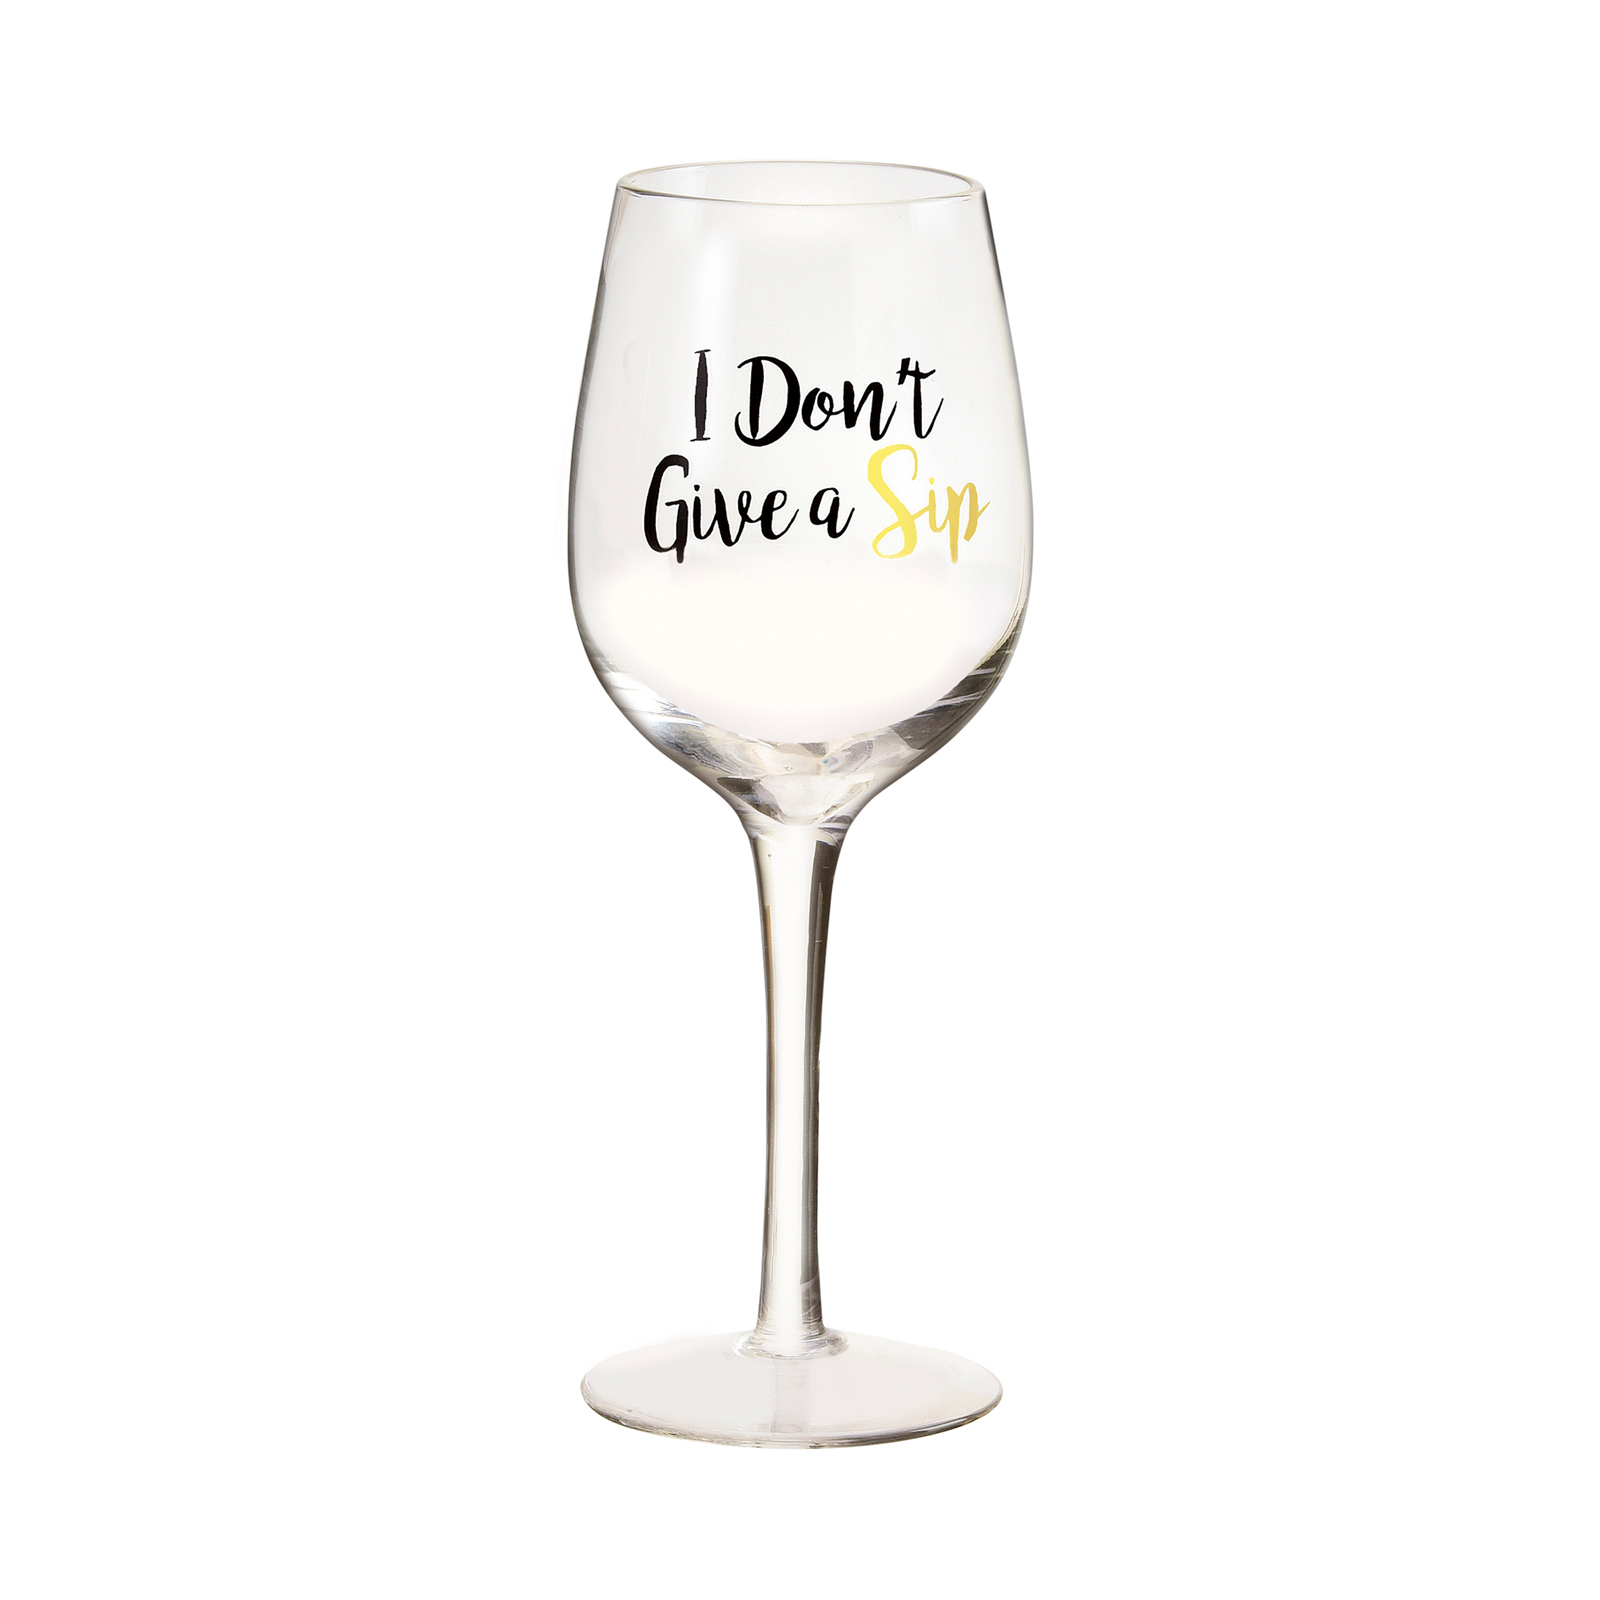 Amici Home I Don't Give a Sip Wine Glass PVC by Global Amici